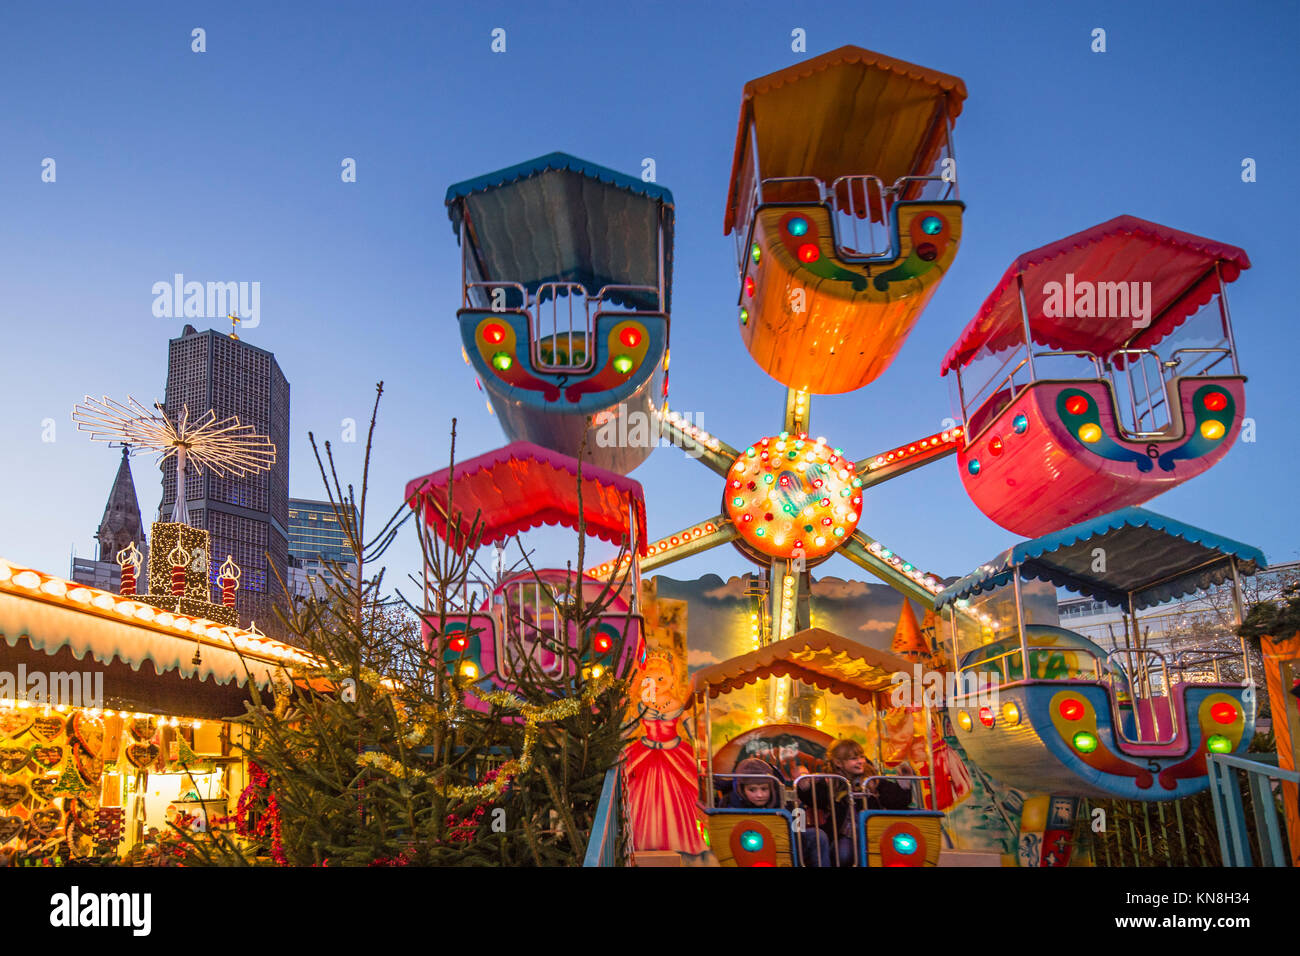 Christmas Market at Kaiser Wilhelm Memorial Church, Breitscheidplatz, Berlin, Germany - Stock Image